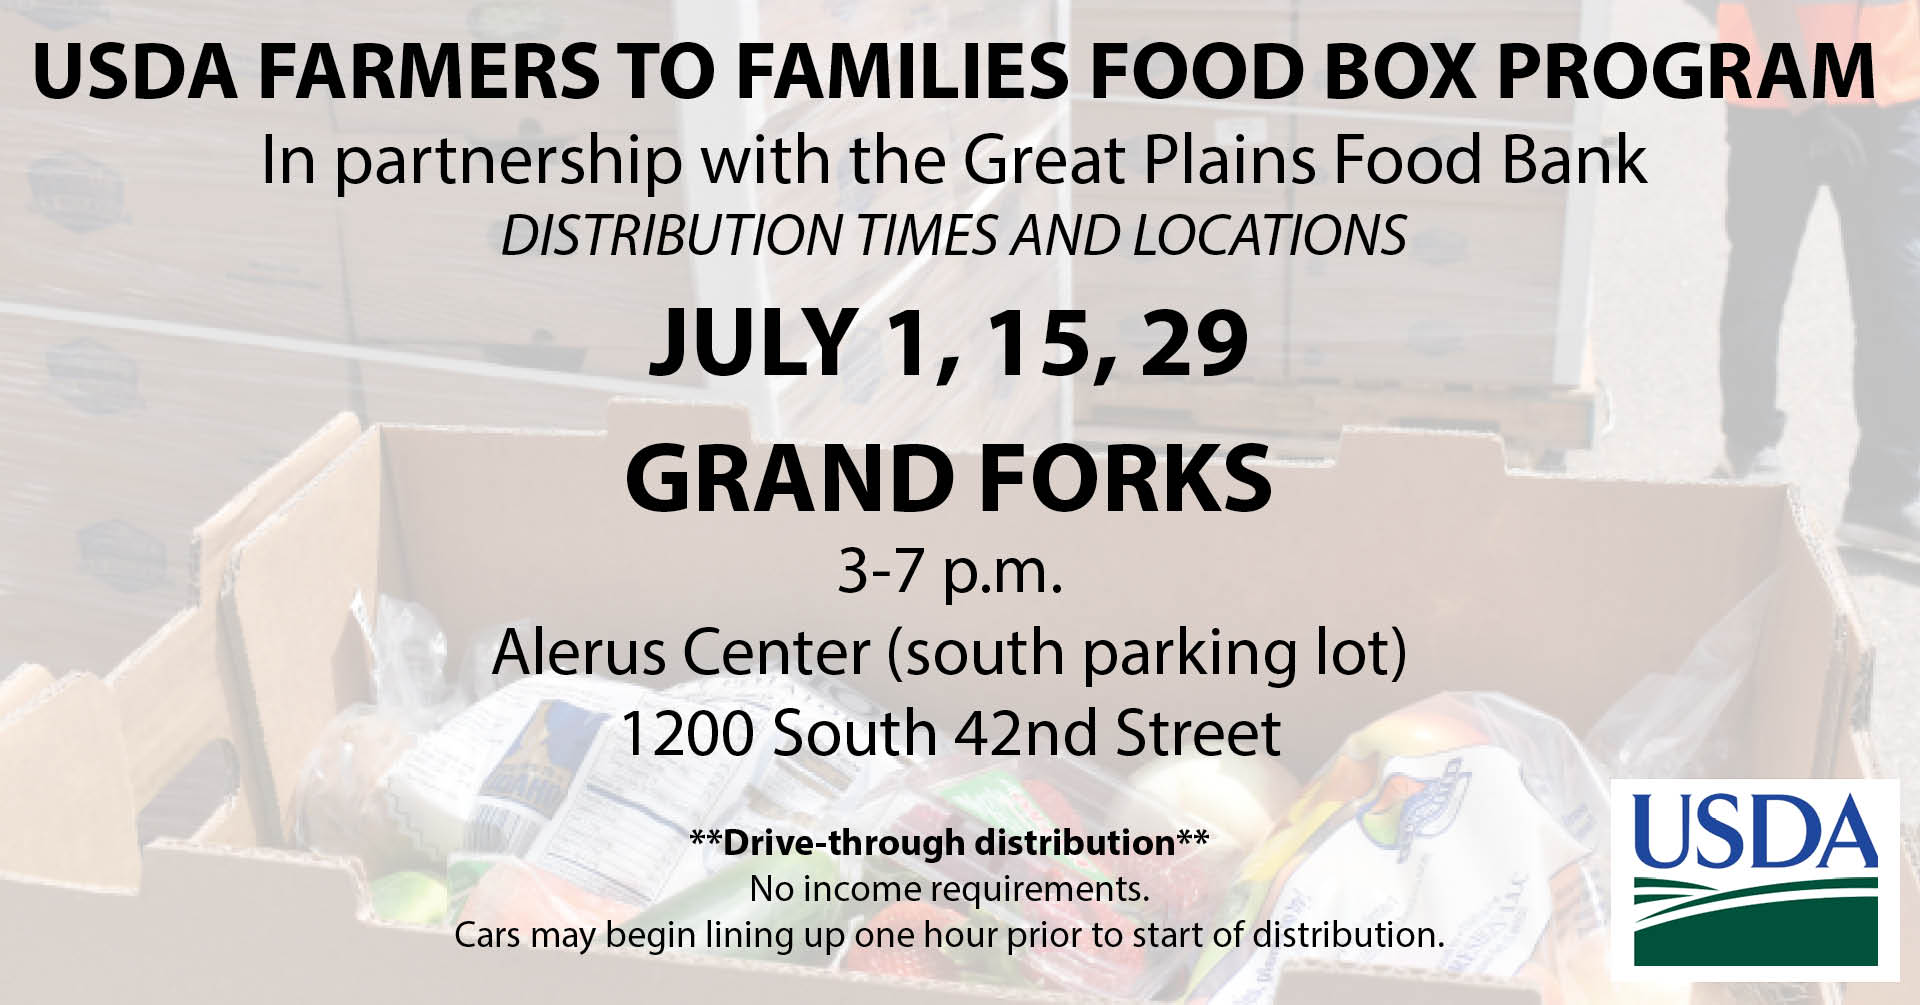 USDA Farmers to Families Food Box Pick Up